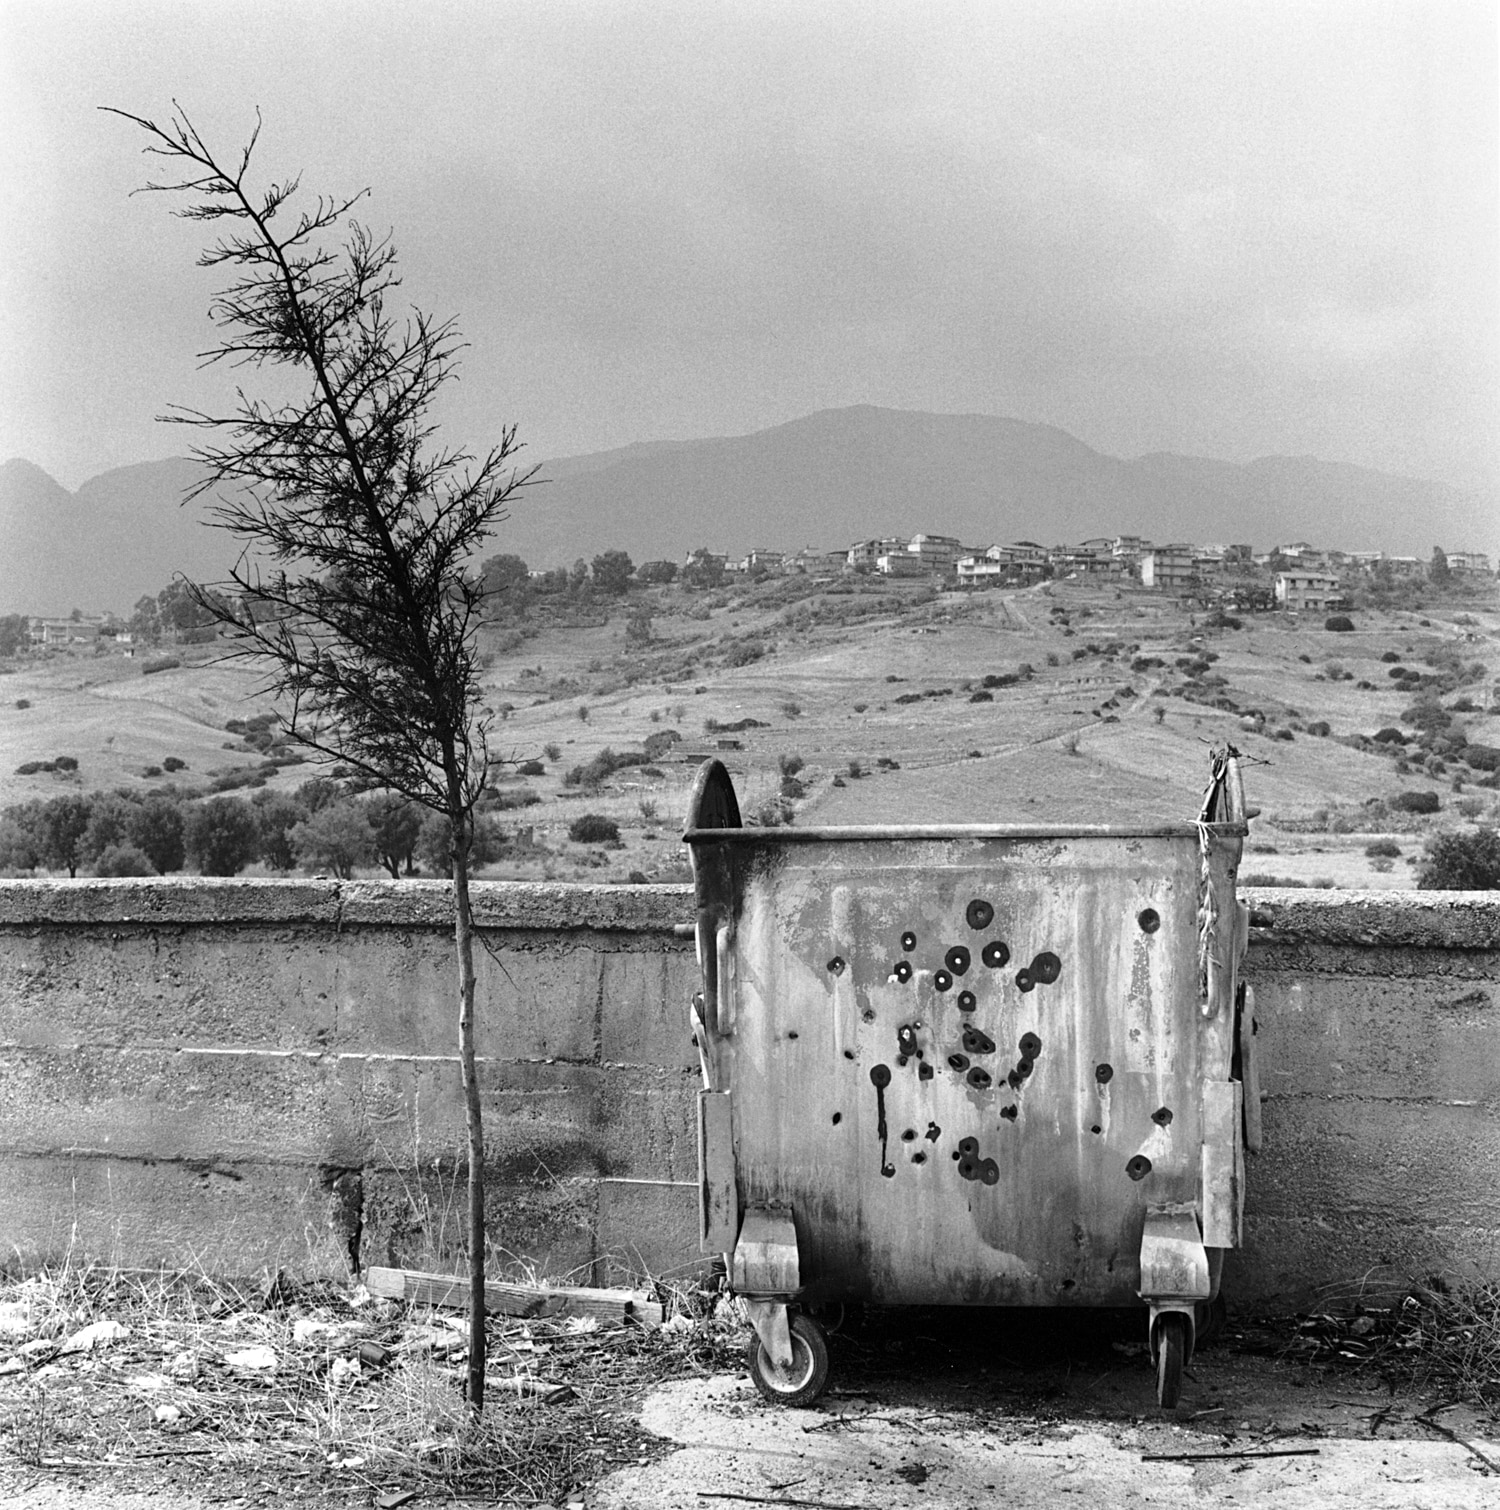 Garbage bin riddled with bullet holes in San Luca.